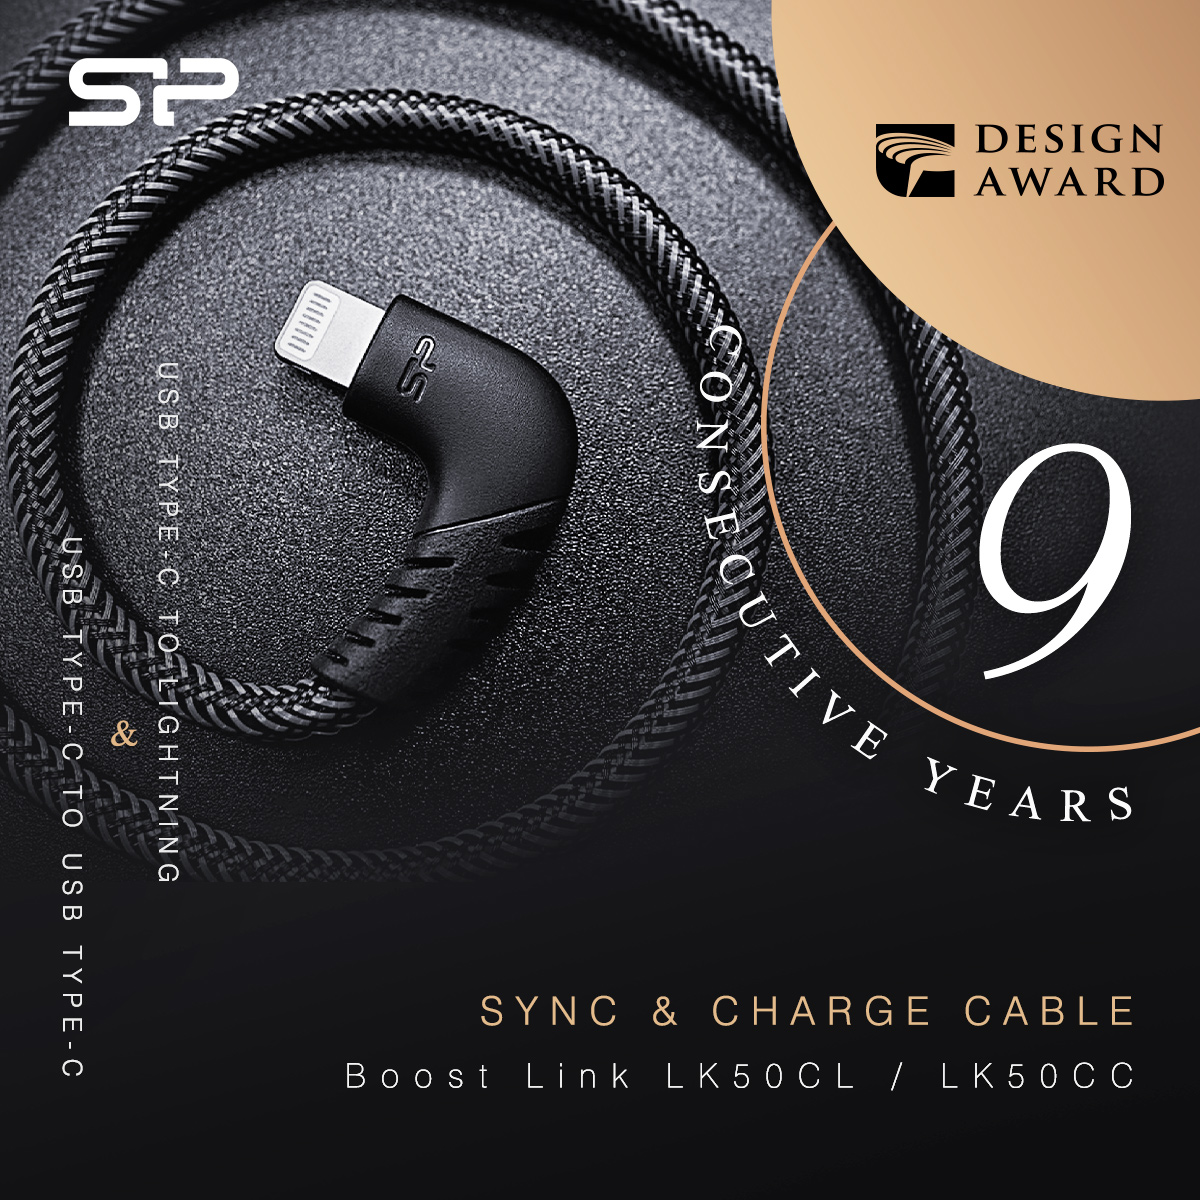 Two Cables Earn Silicon Power The Golden Pin For 9th Consecutive Year